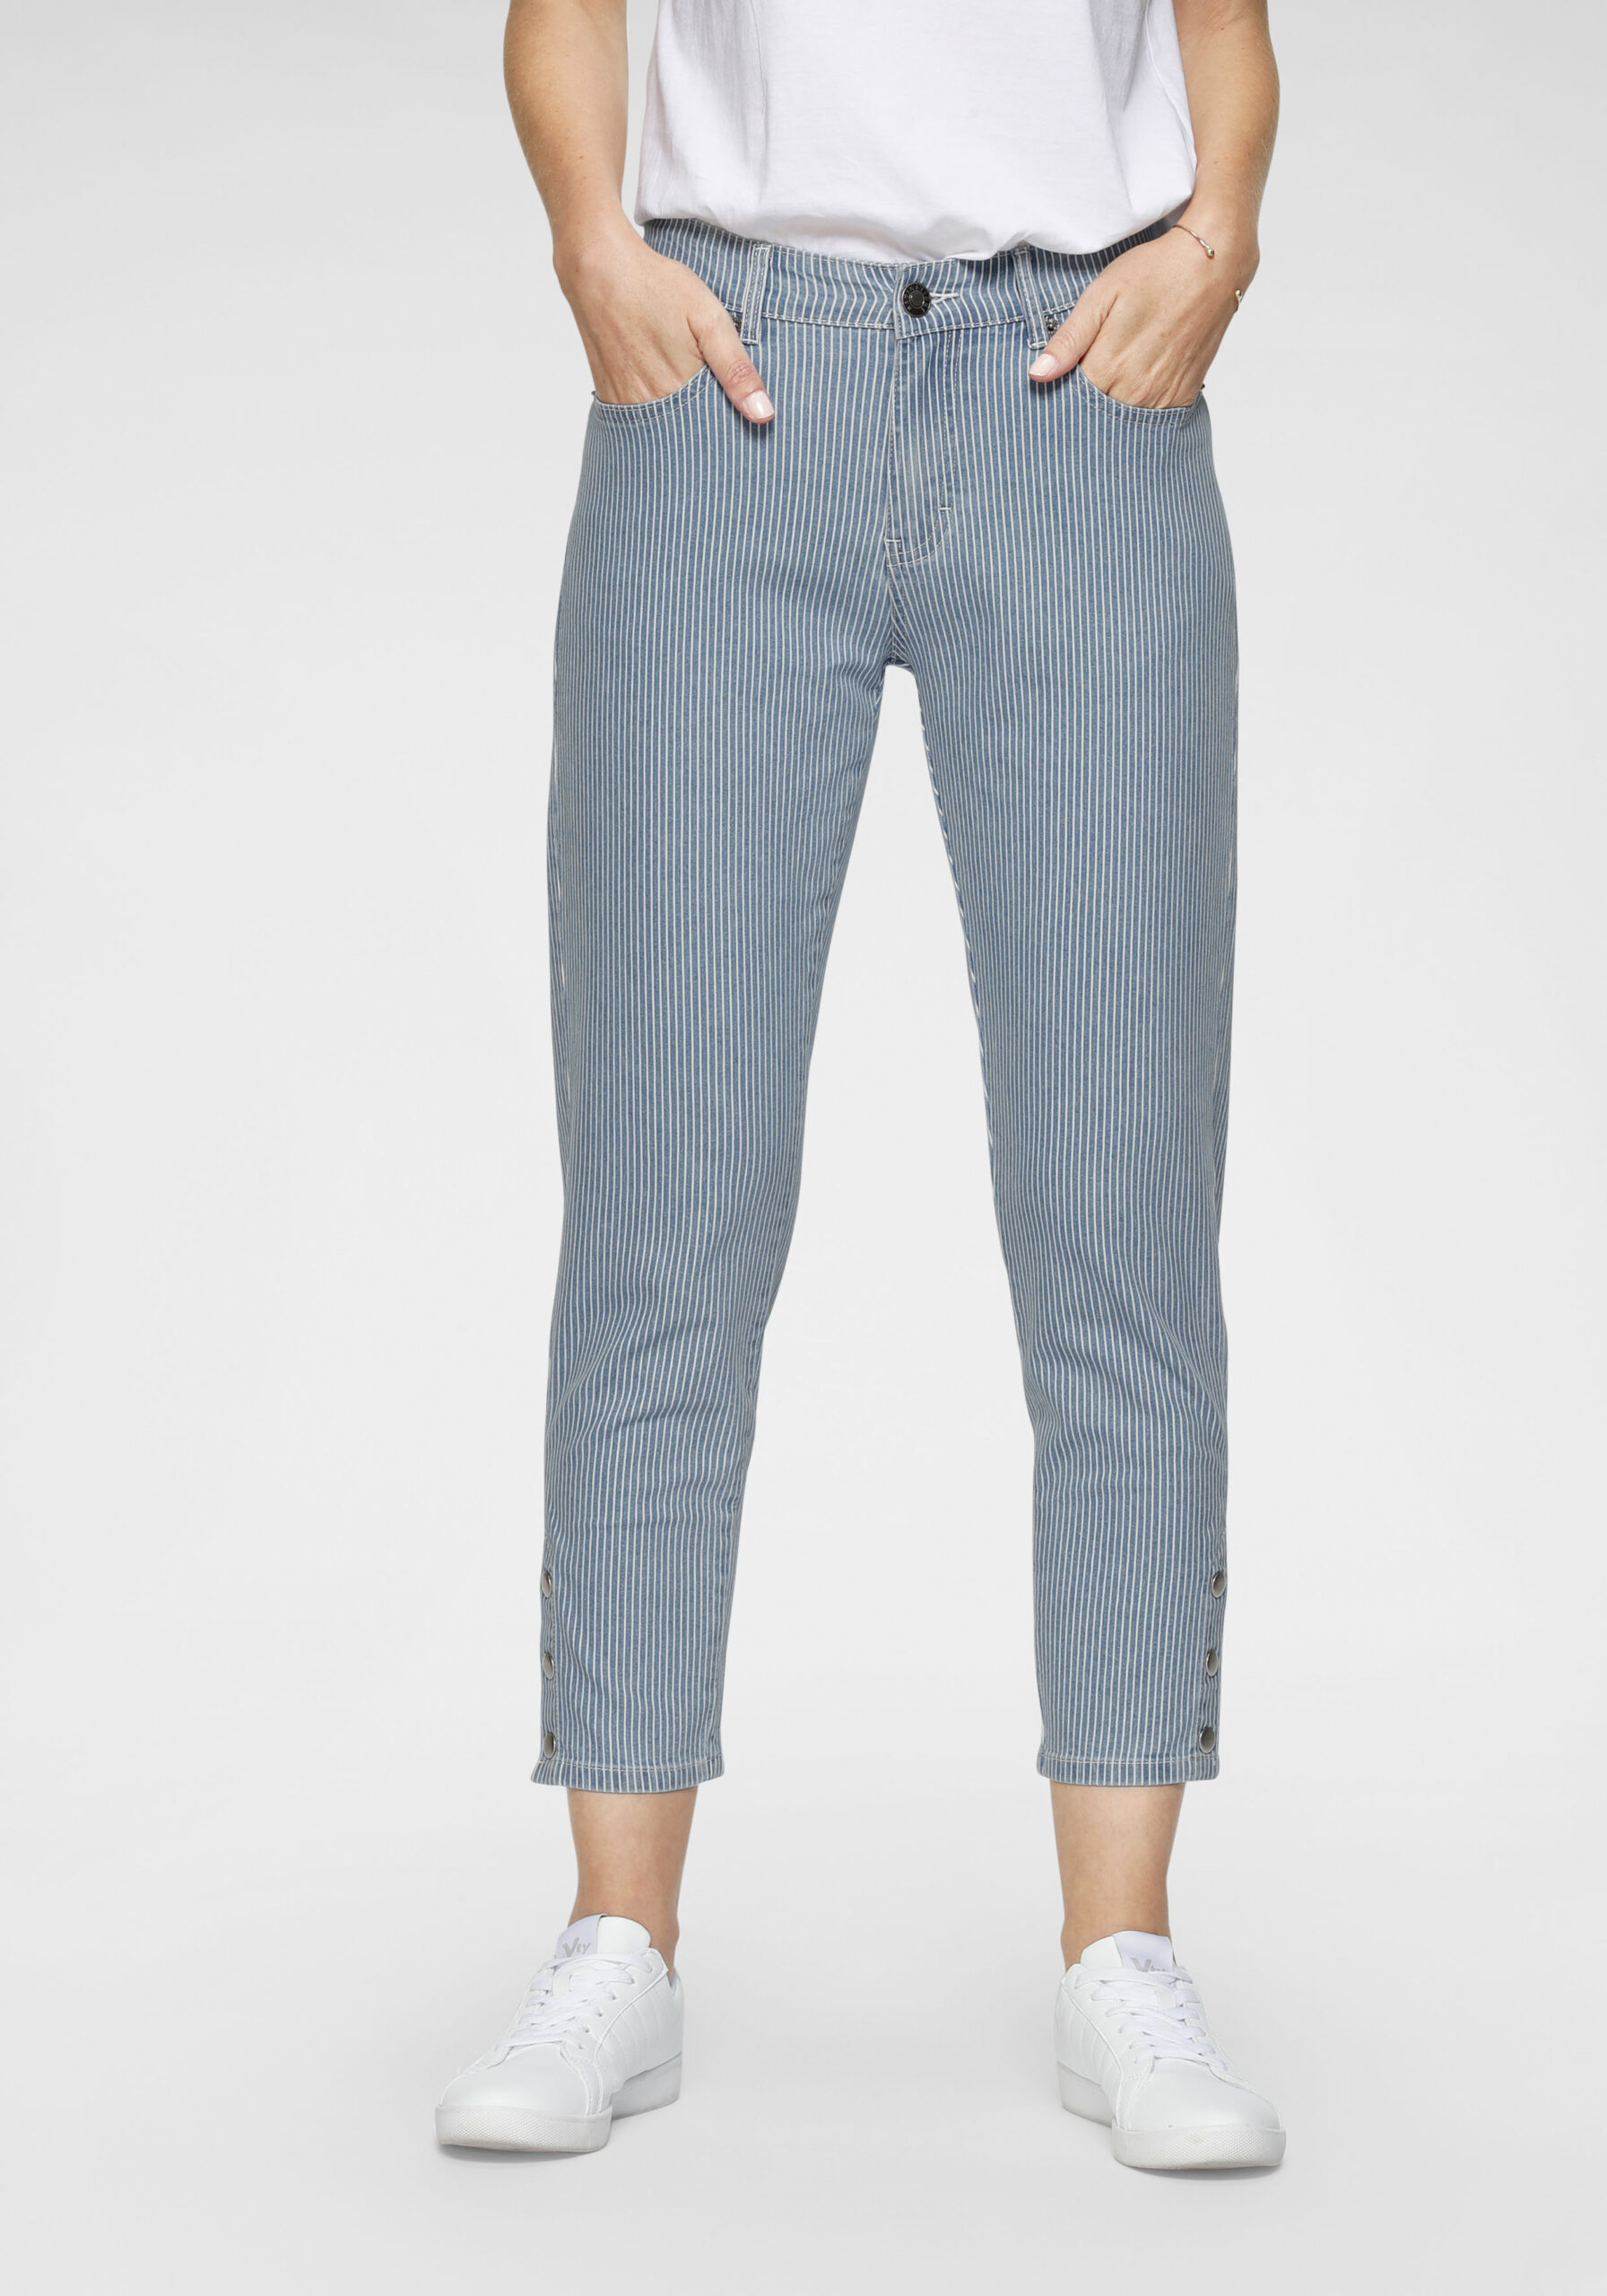 Damen Gestreifte 7/8-Jeans mit Highlights